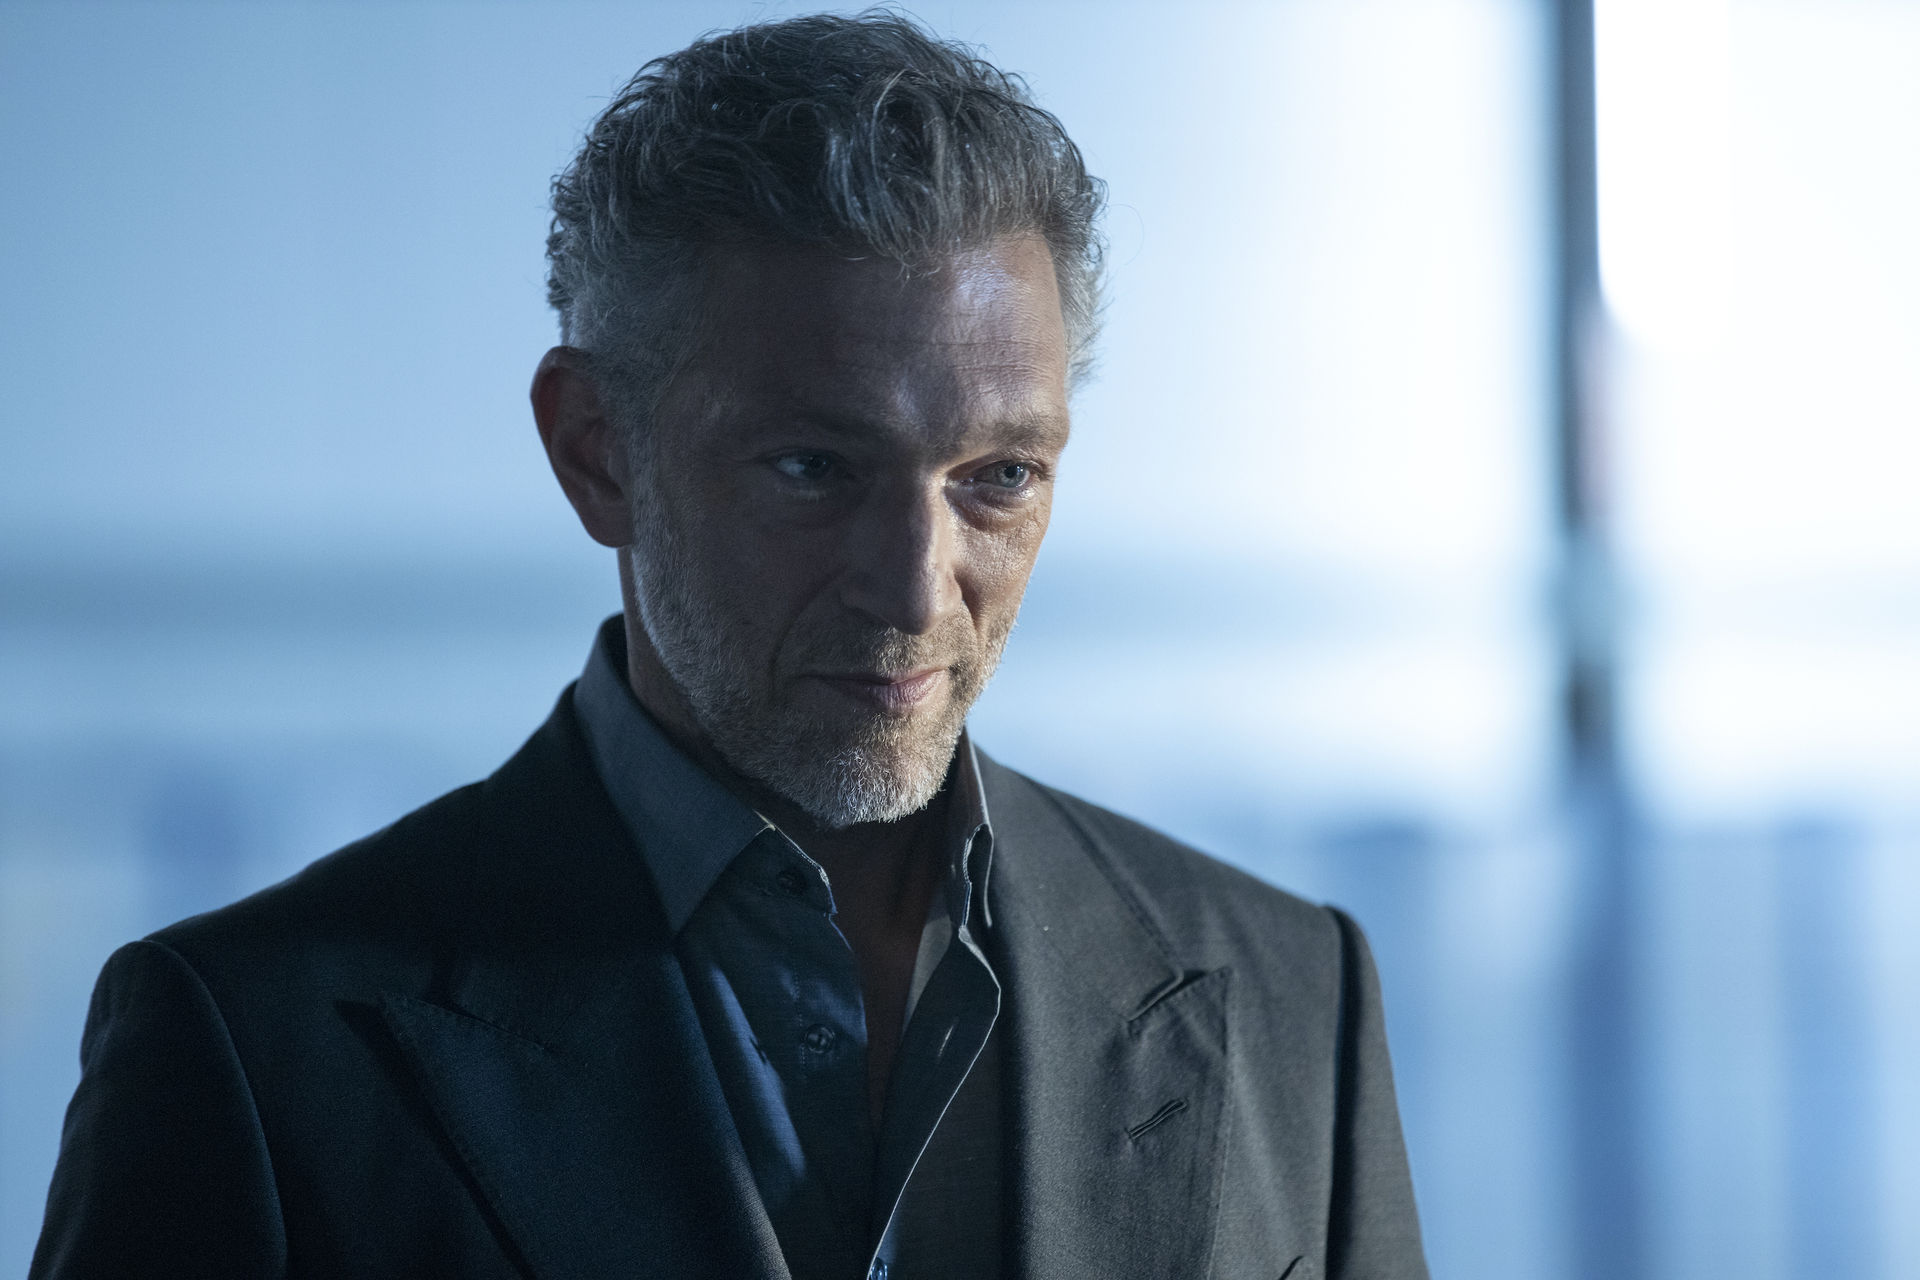 Westworld Vincent Cassel On Replacing Anthony Hopkins And What